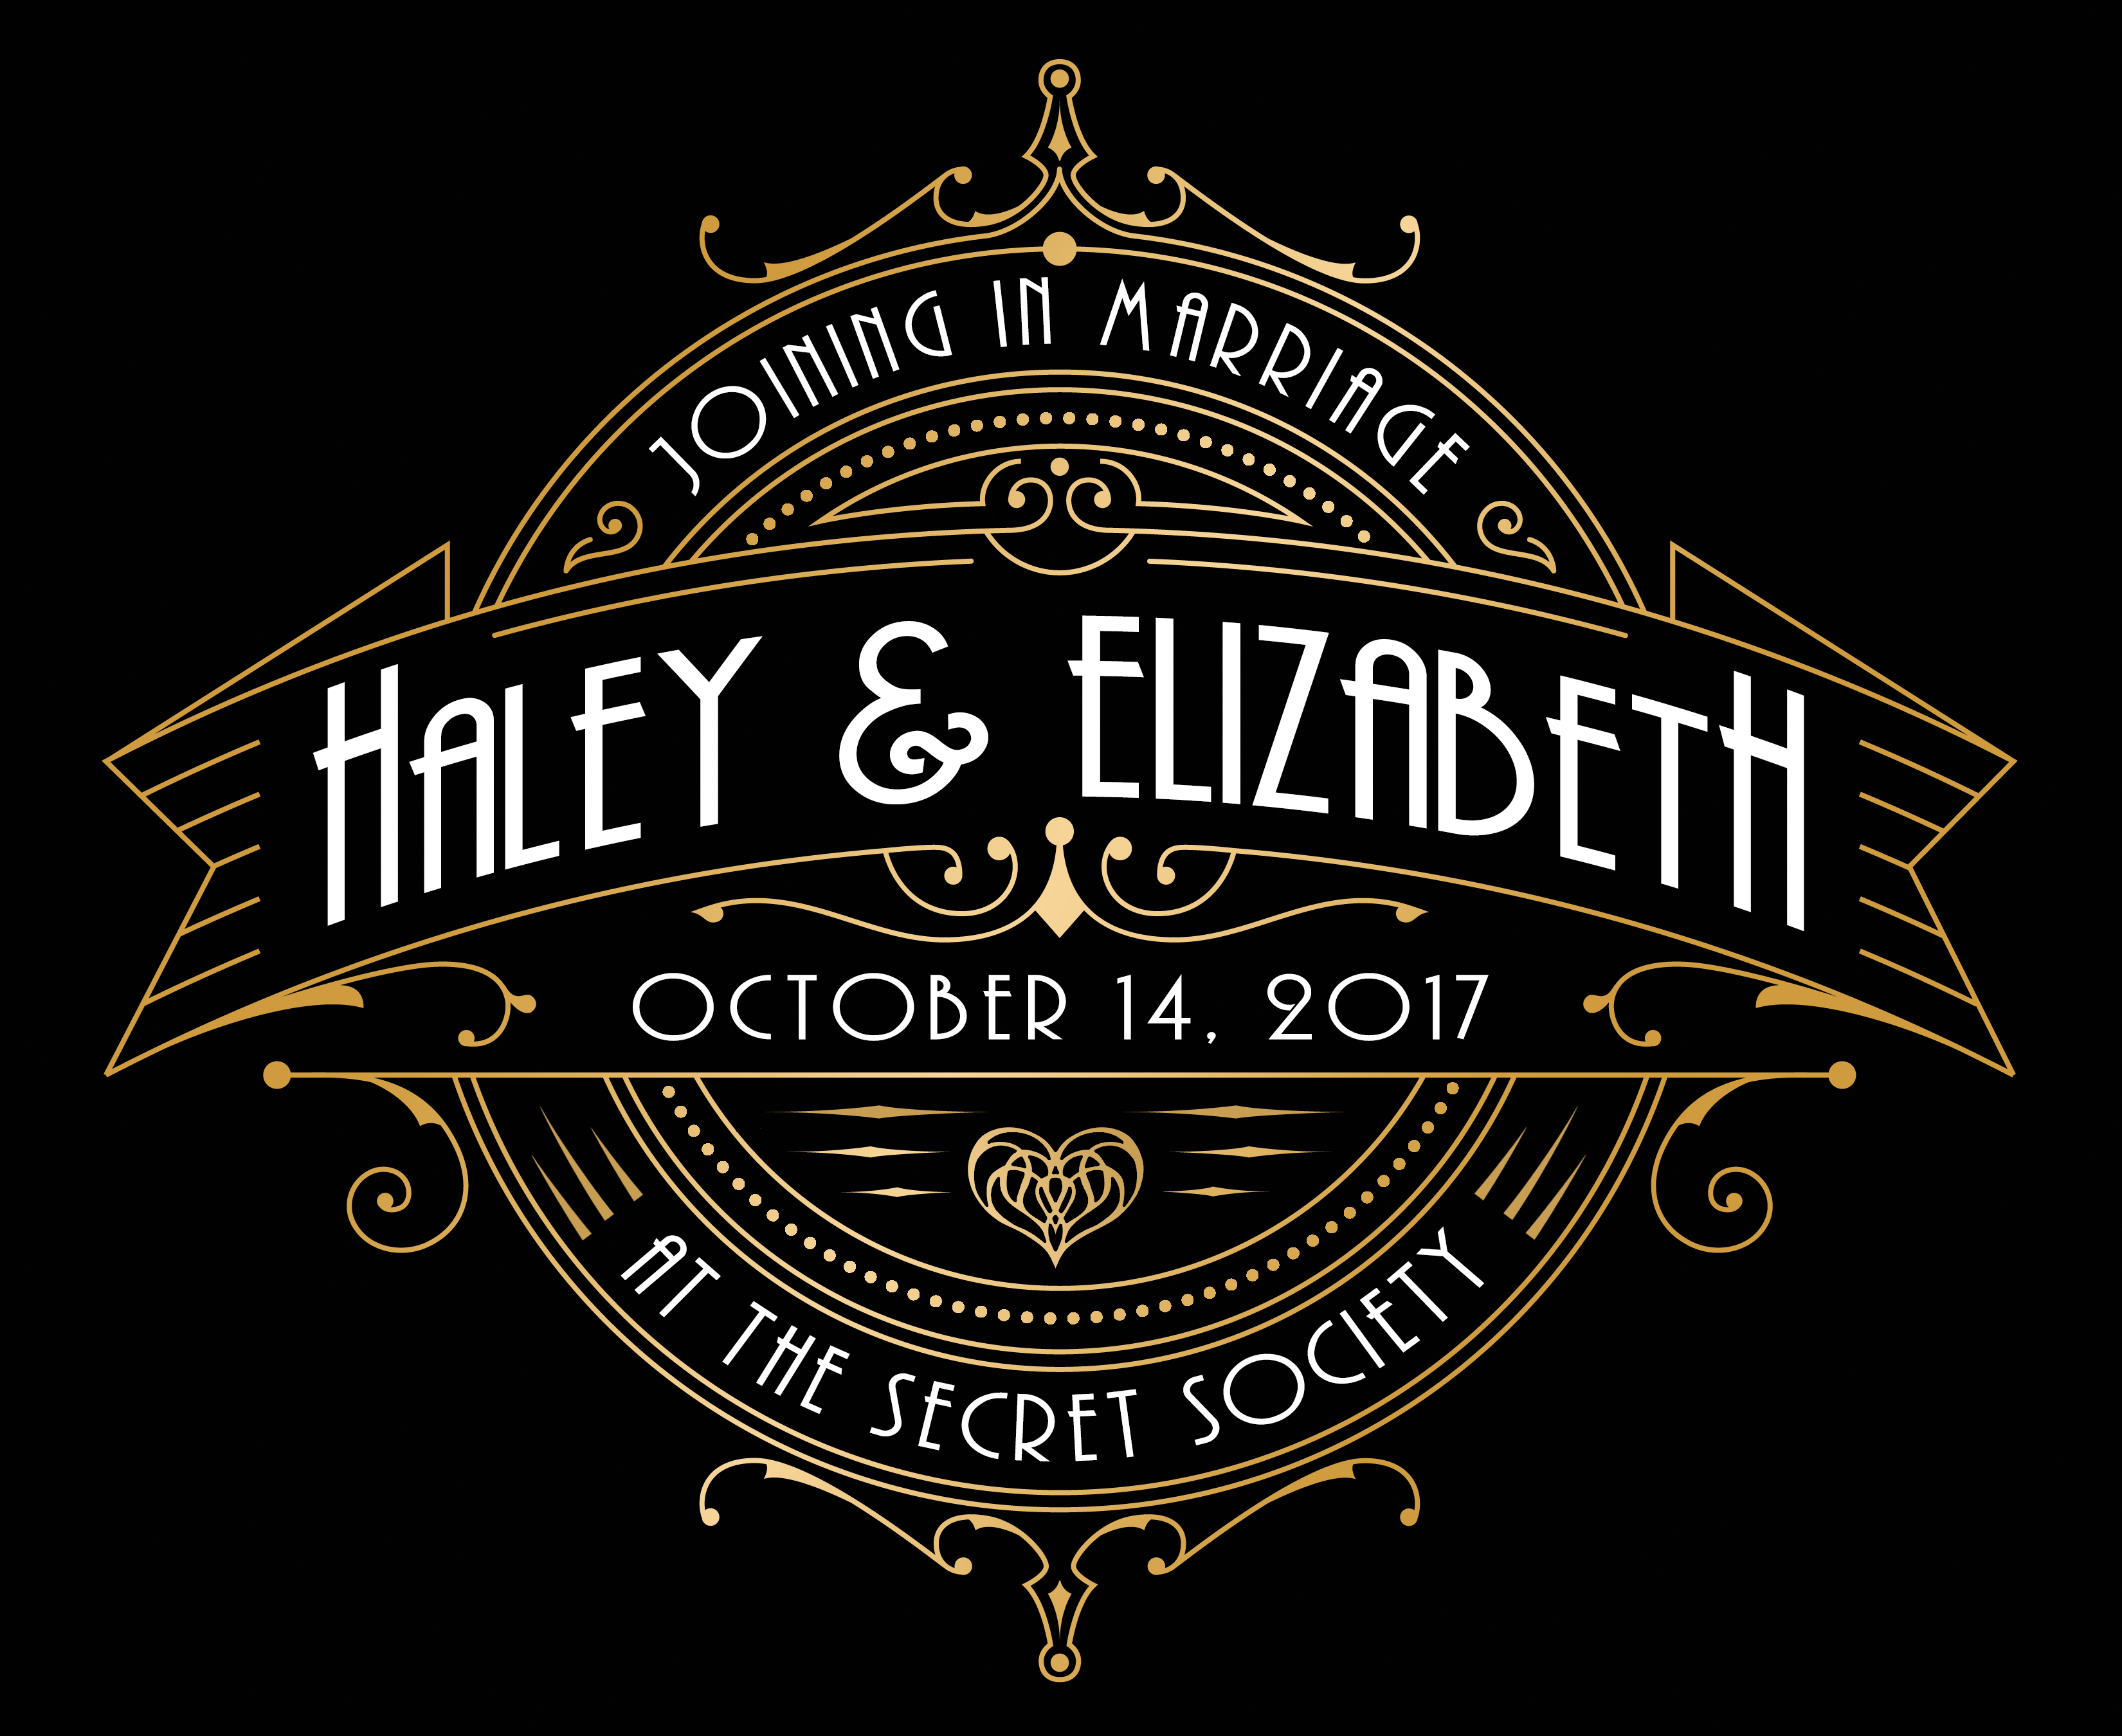 Wedding Invitation Graphic